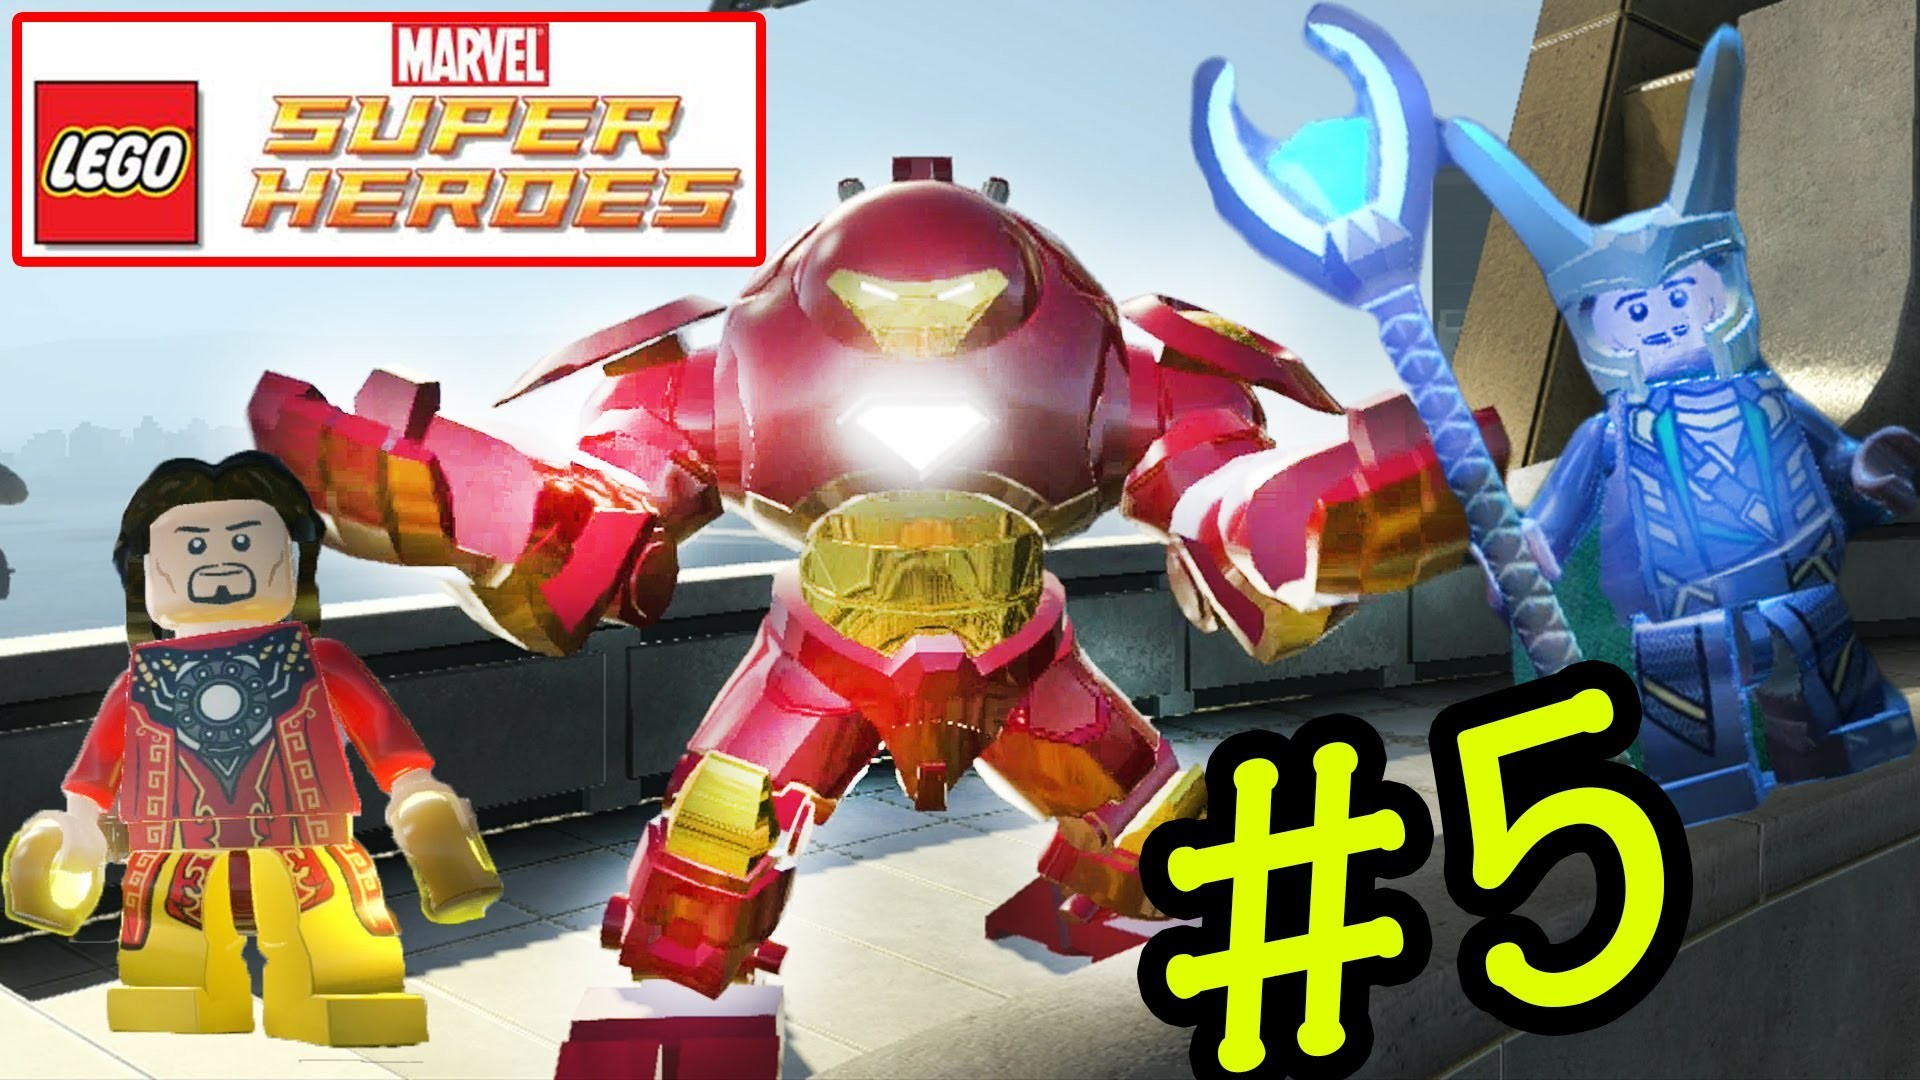 1920x1080 LEGO Marvel Superheroes - Flying Hulkbuster Ironman Glitch - YouTube The  Hulk Buster Smash - Wallpaper - Activities - Marvel Super .